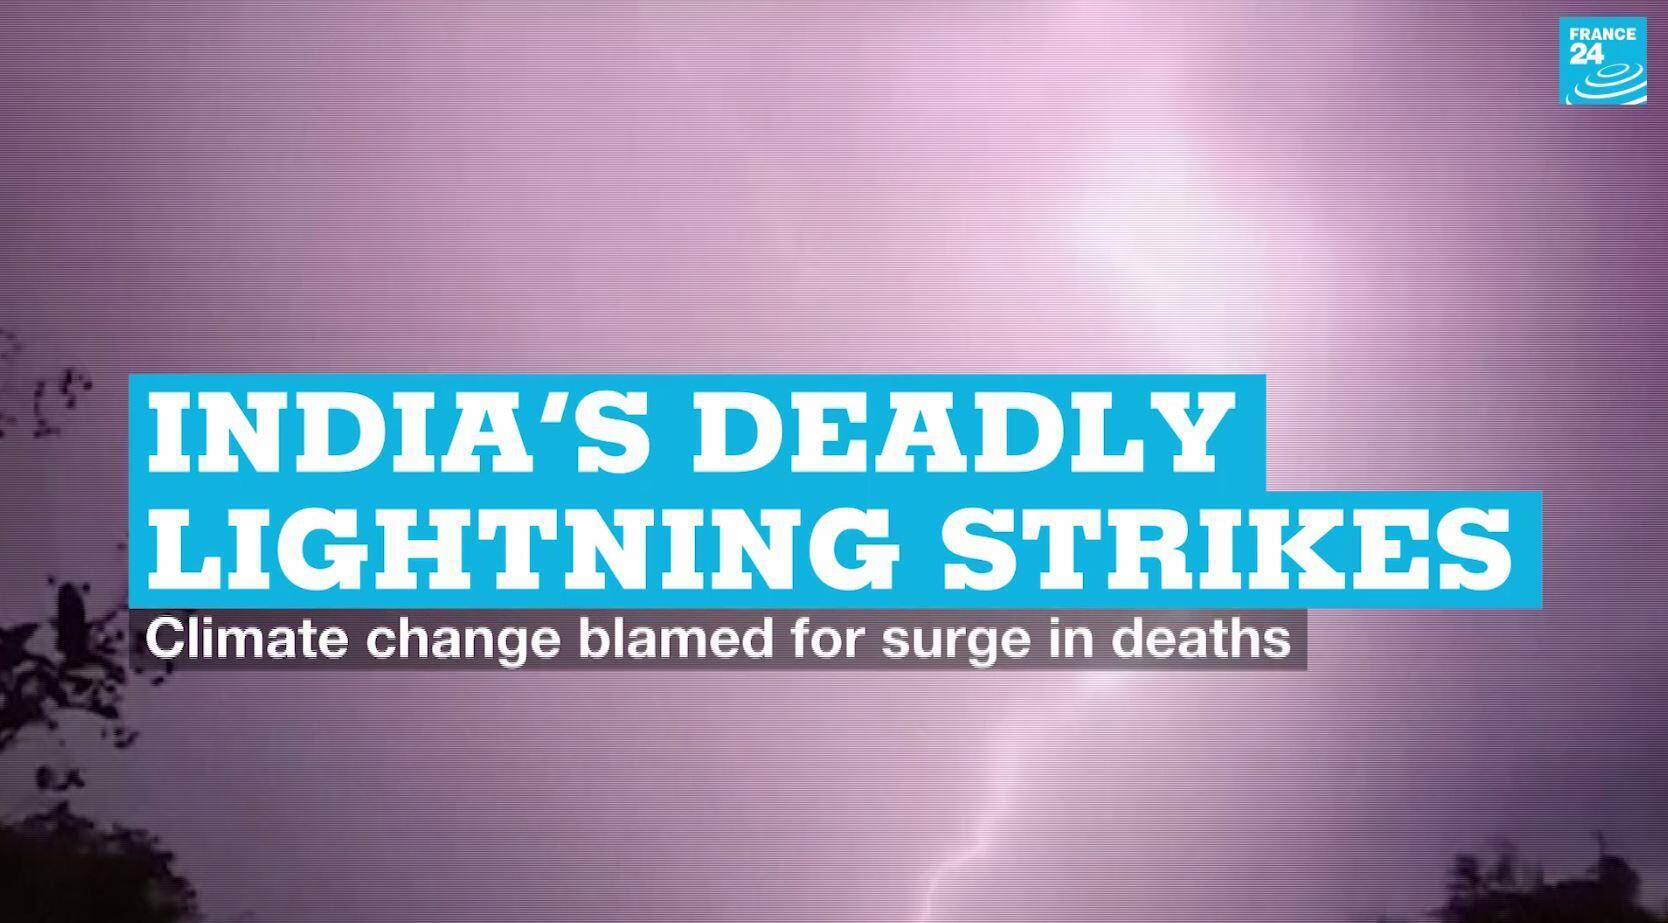 Lightning strikes have killed 147 people in the last ten days in the north Indian state of Bihar local authorities said Sunday July 5, 2020.